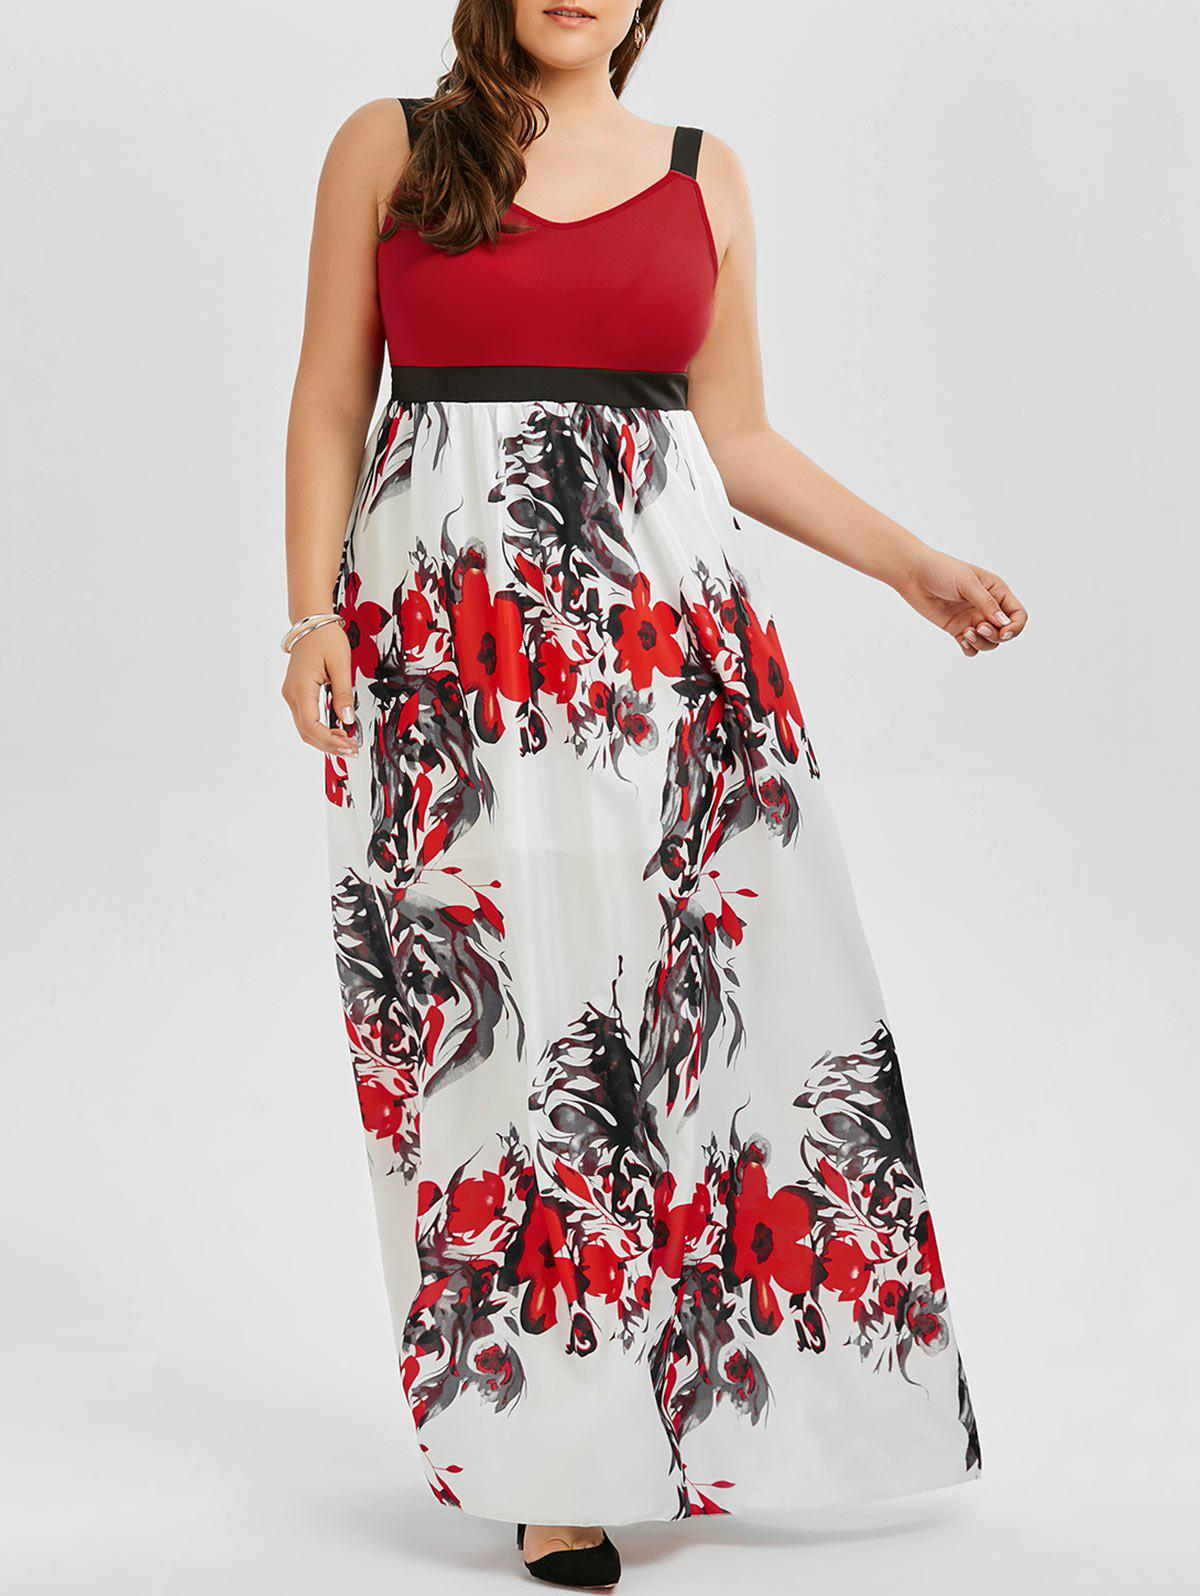 Hot Floral A Line Maxi Plus Size Prom Dress